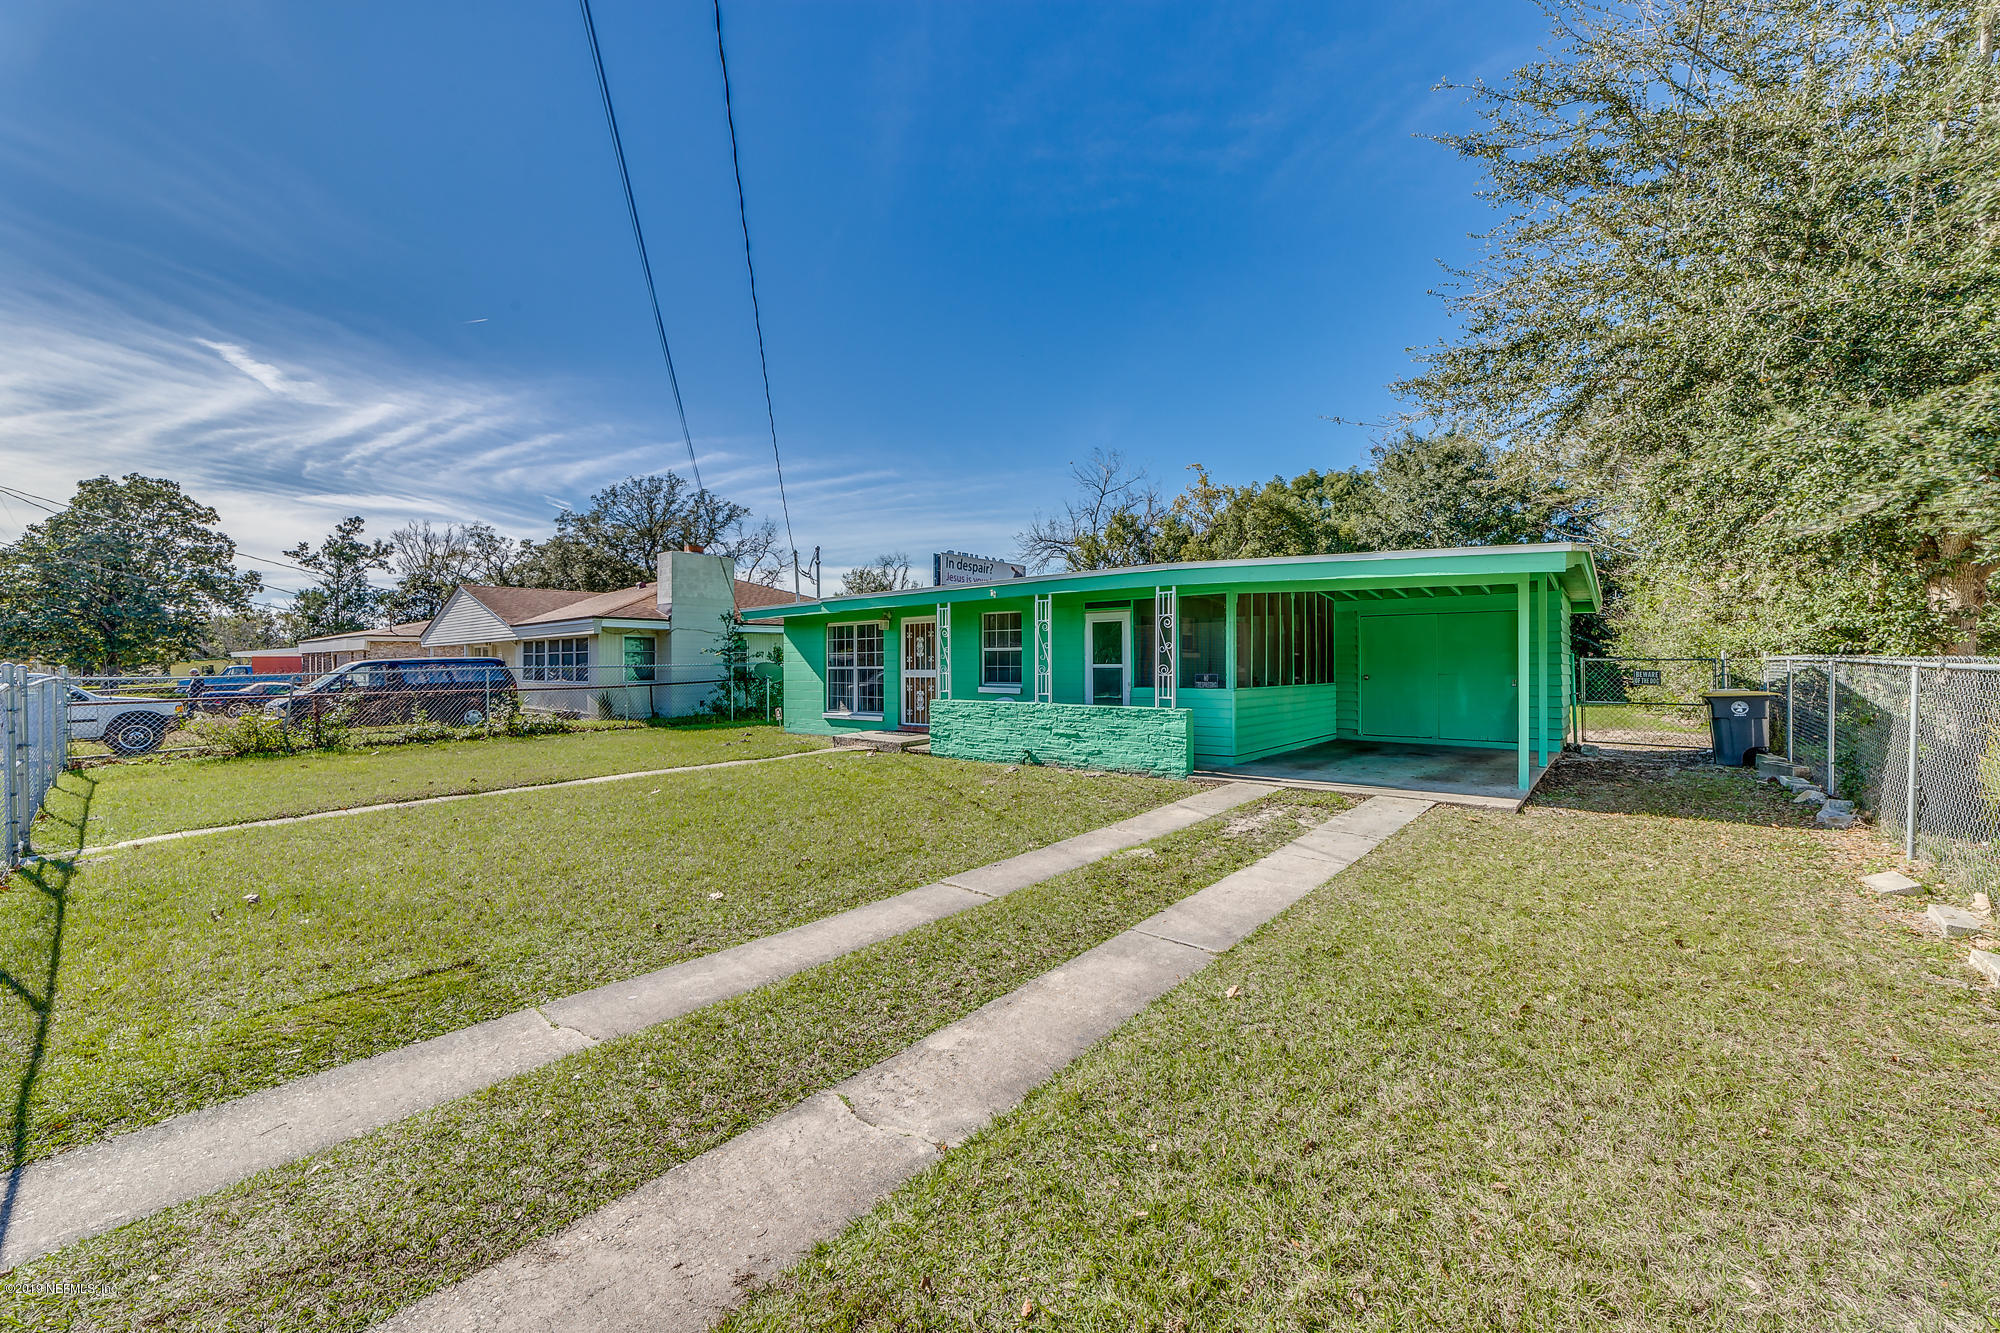 4638 CASTLEWOOD, JACKSONVILLE, FLORIDA 32206, 3 Bedrooms Bedrooms, ,1 BathroomBathrooms,Residential - single family,For sale,CASTLEWOOD,974164